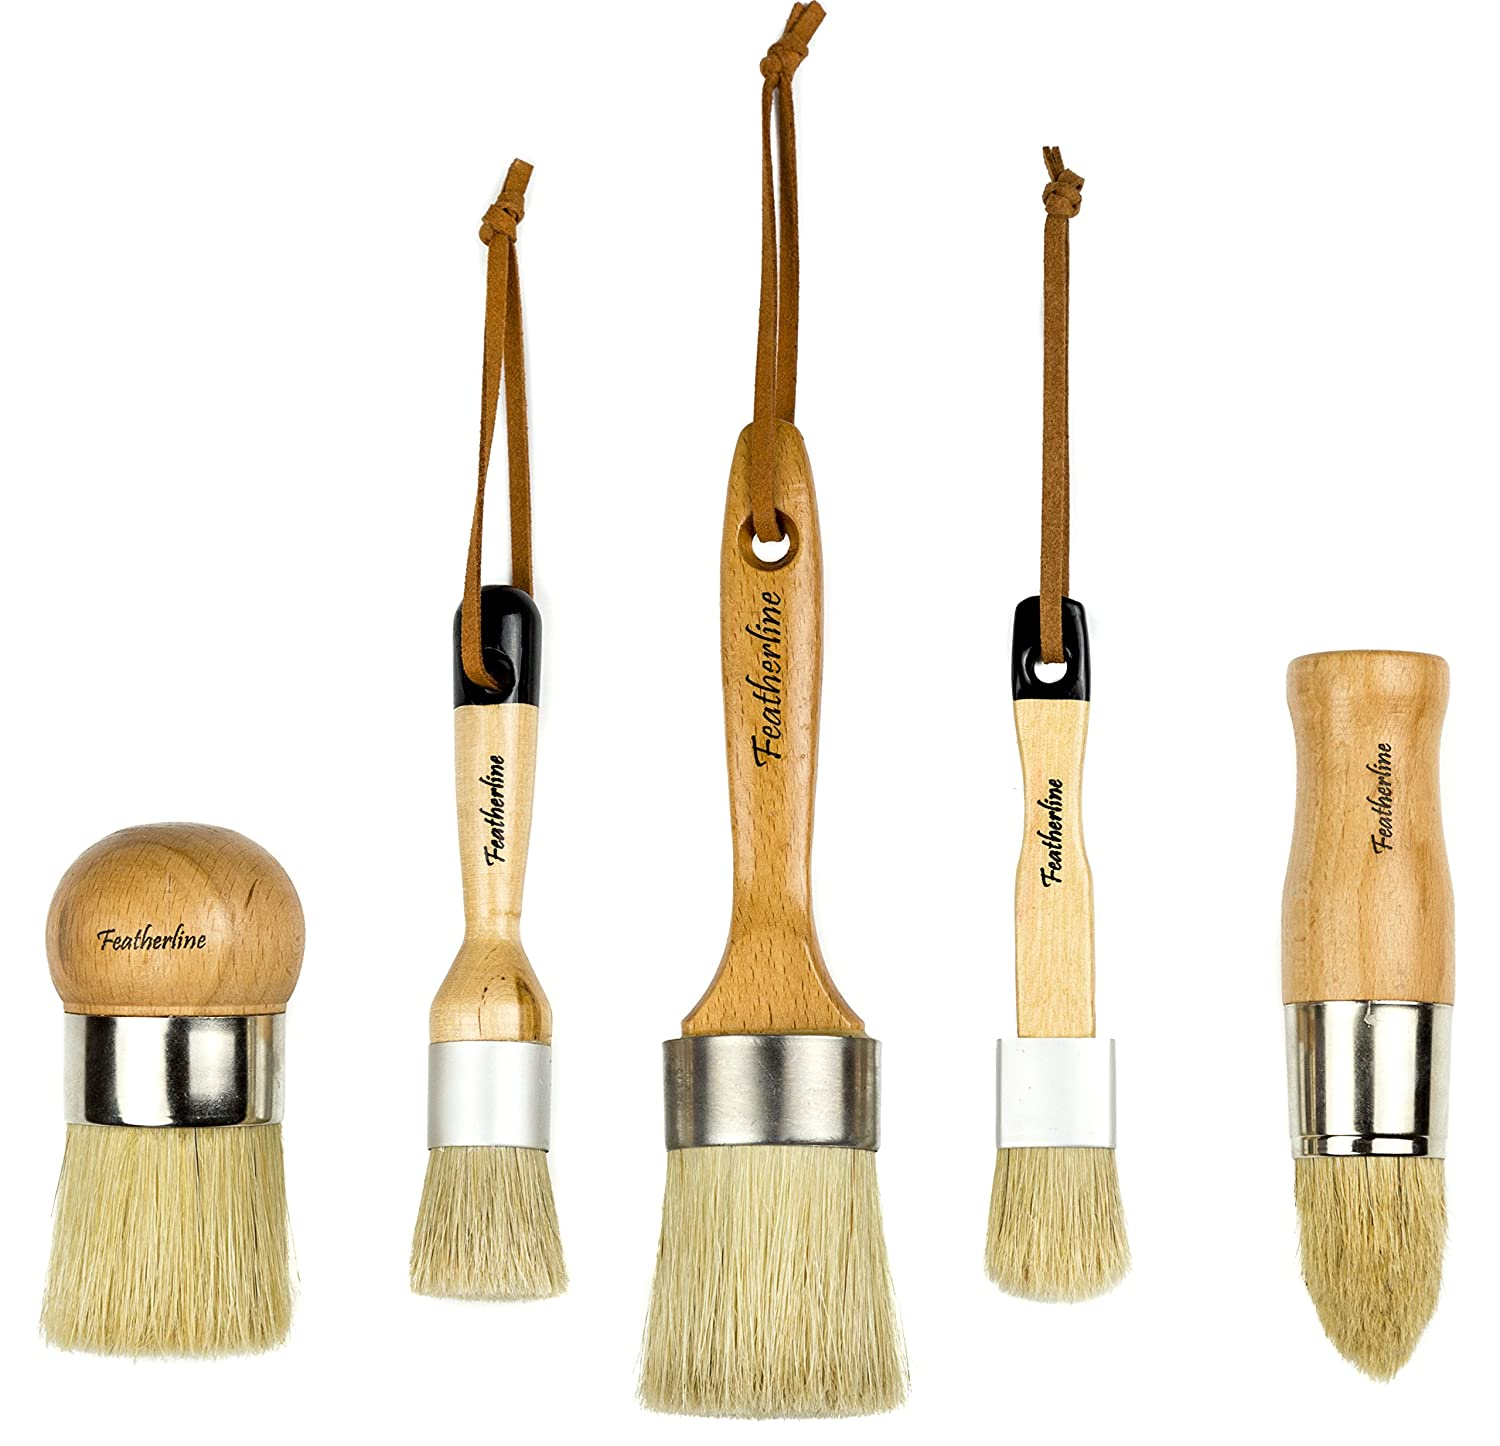 Featherline Series Pro Advanced Chalk Paint & Waxing 5 Brush Set | Top Results for Wax and Painting Projects | Use with Annie Sloan, Folkart, Renaissance, Brossum, Rustoleum, Sidewalk, Roseart 4336890335